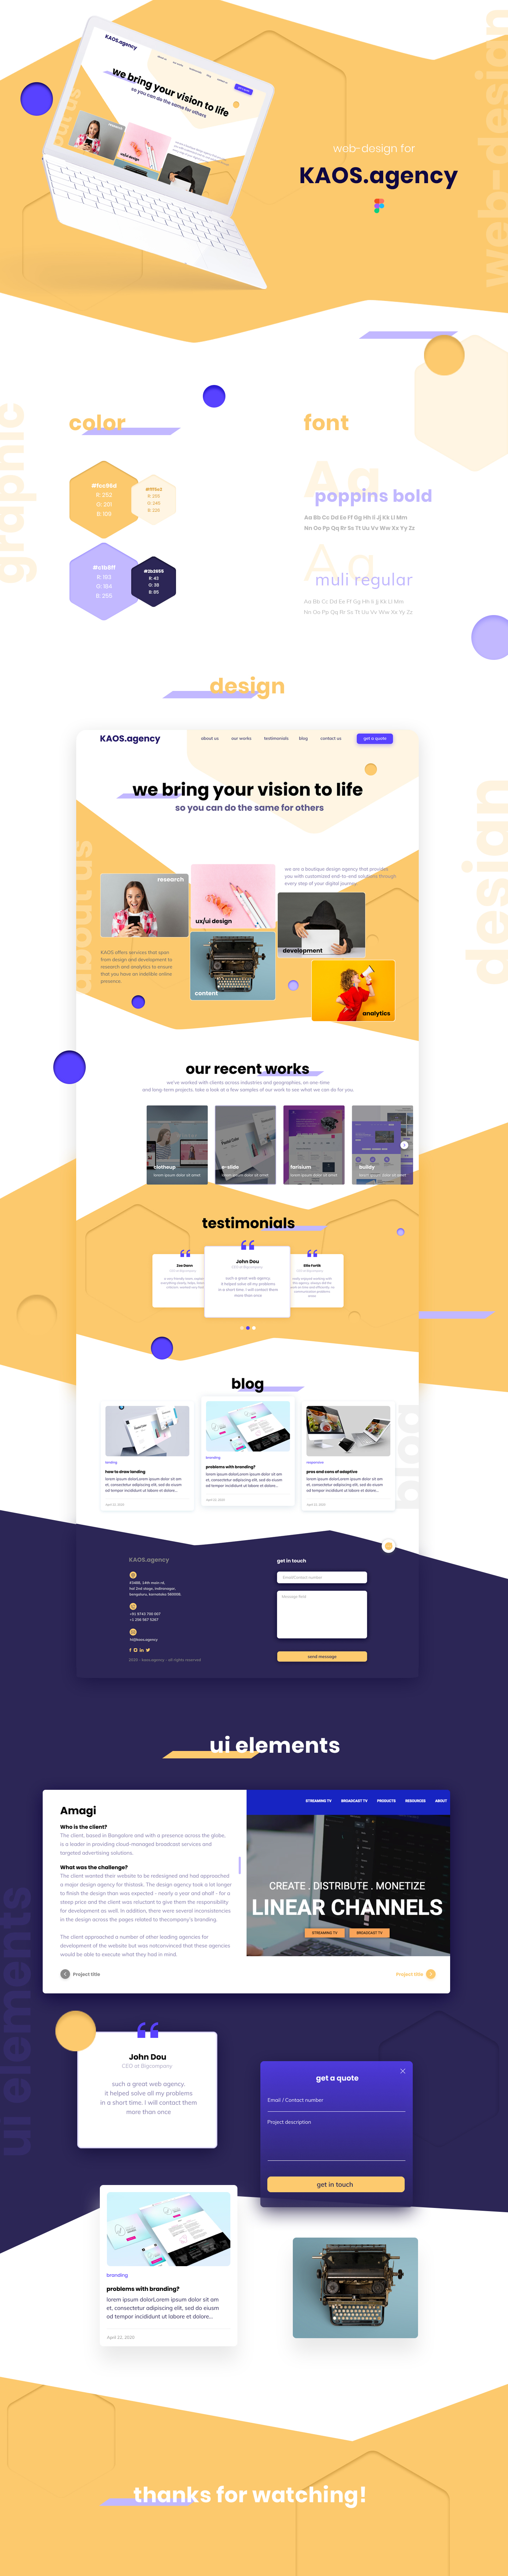 This presentation includes grafic elements wich shows UX design, new color scheme of a website and examples of responsive design